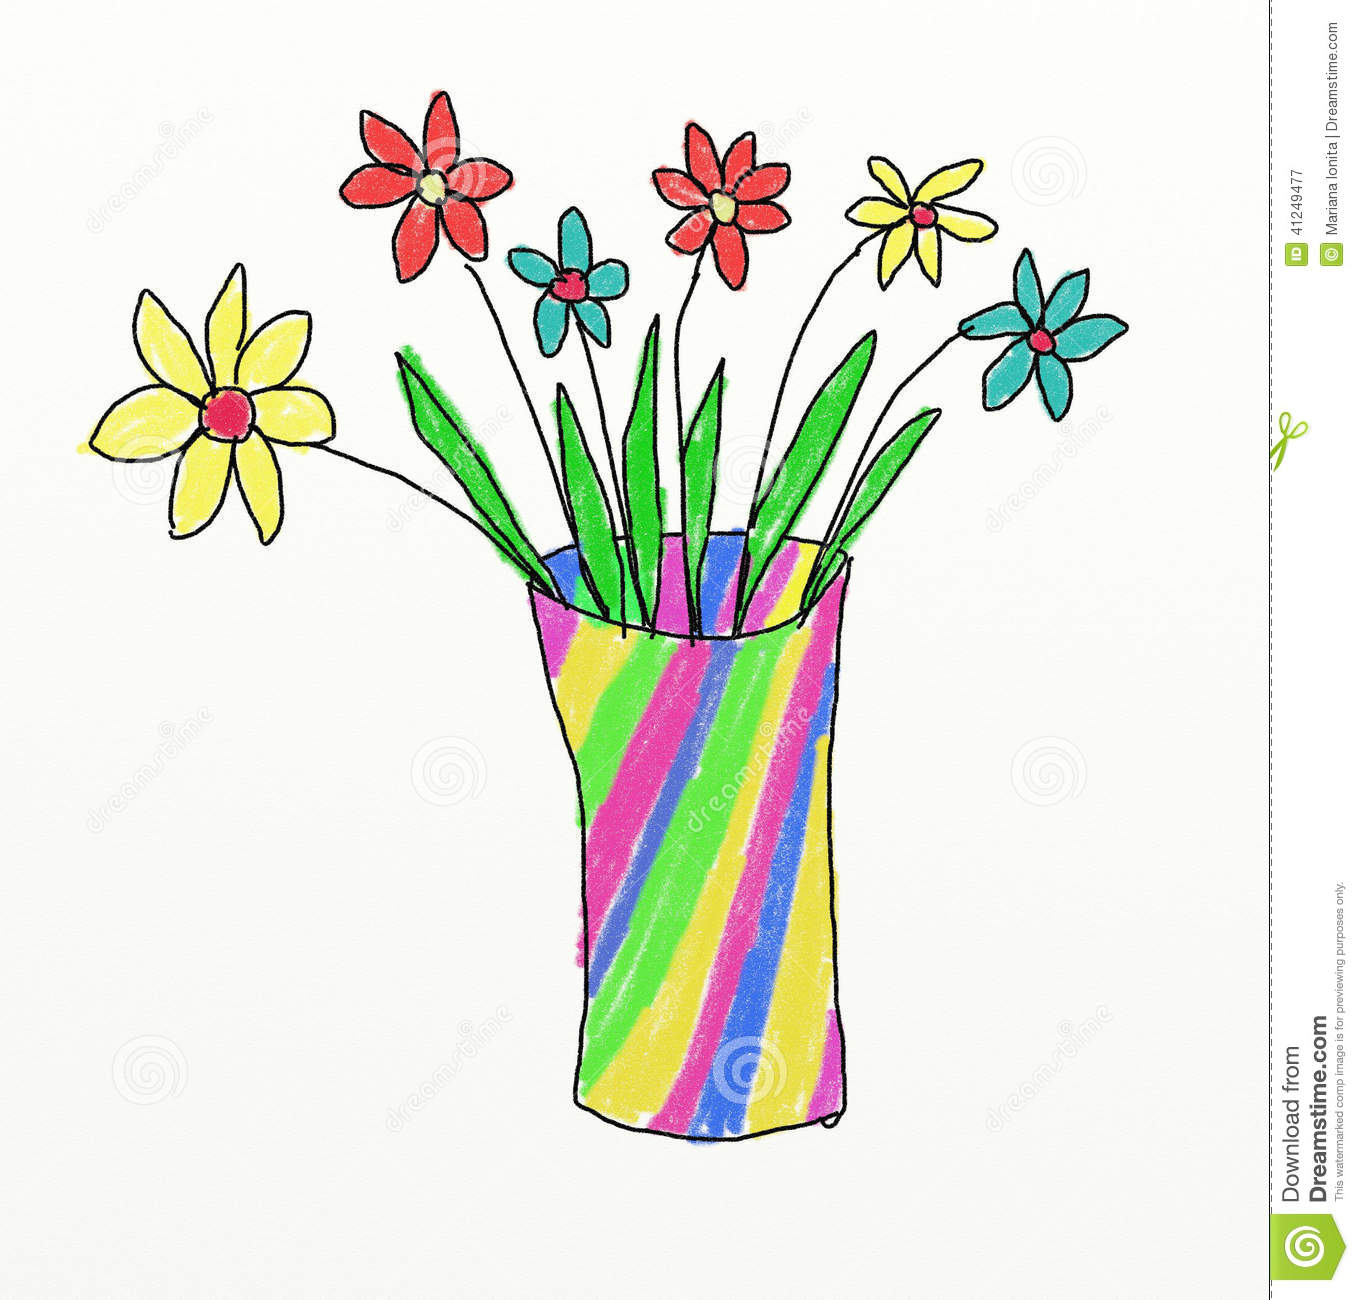 Flower Child Line Drawing : Vase with flowers children drawing stock illustration